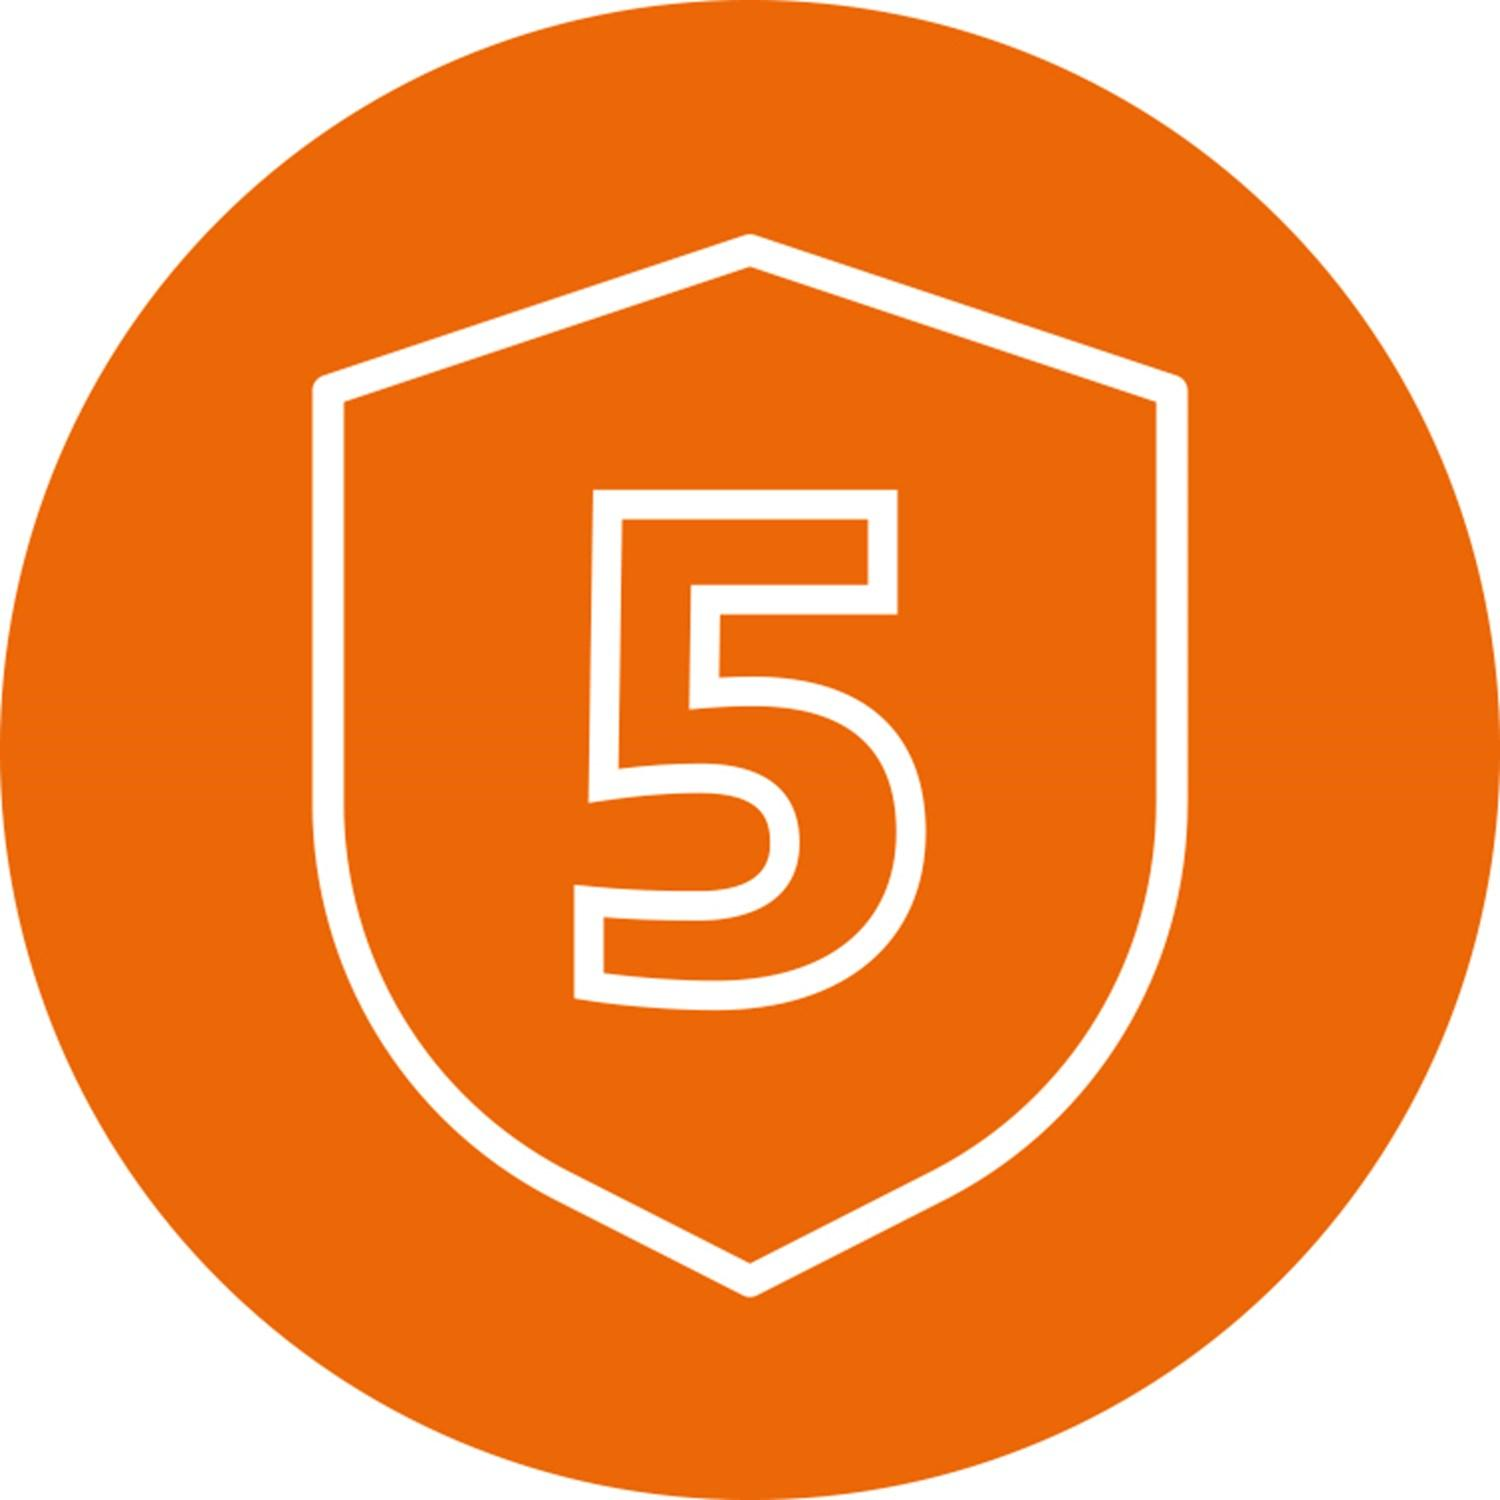 5 days' complimentary Volkswagen Drive Away Insurance